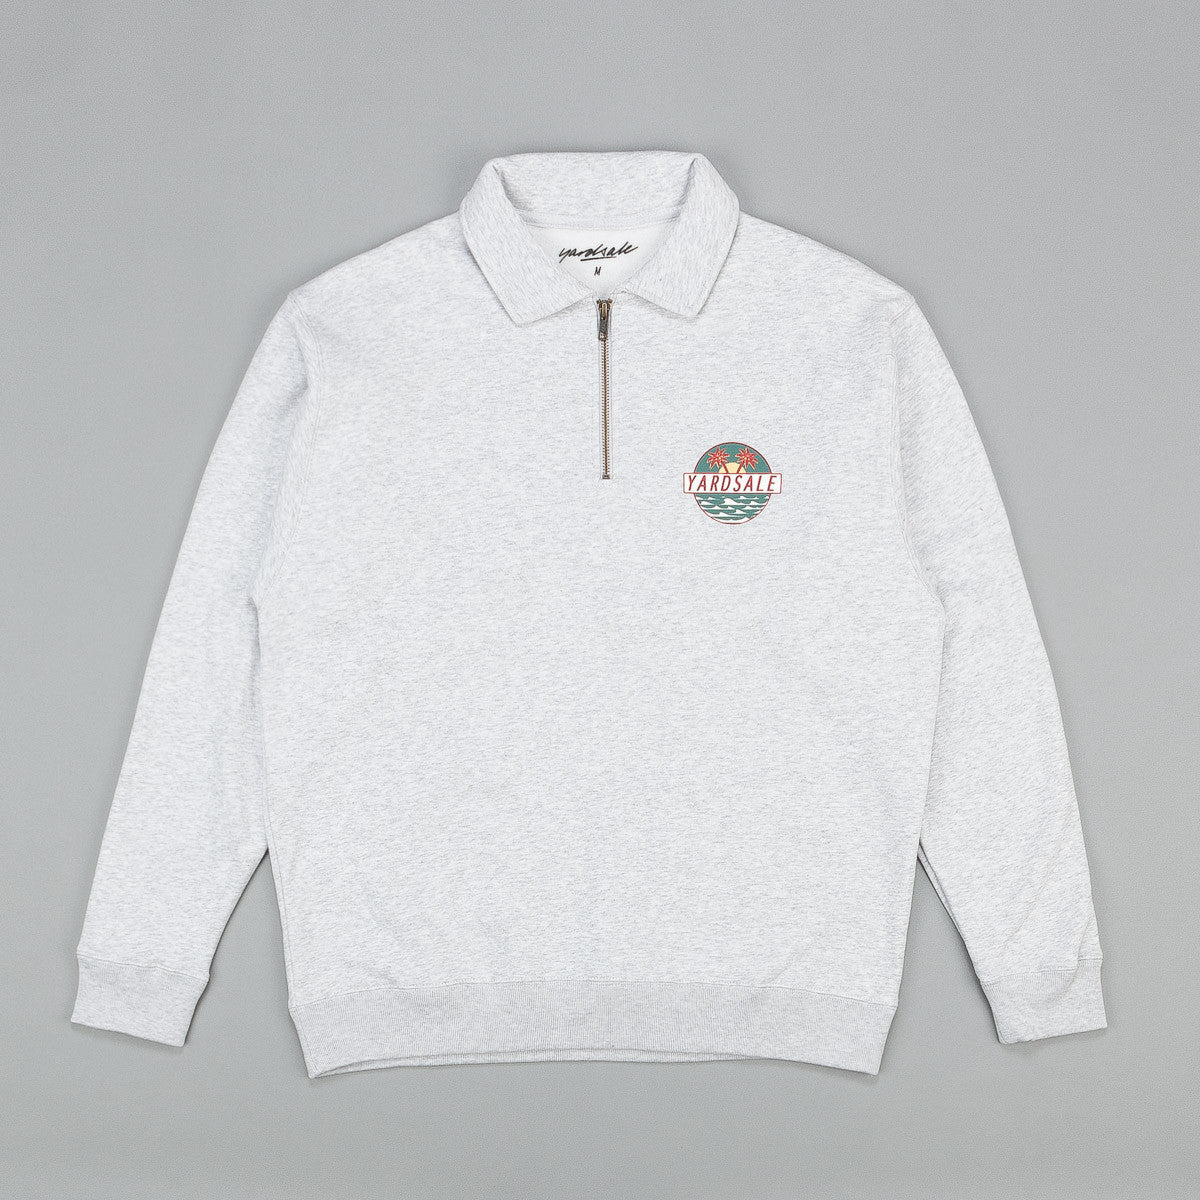 Yardsale Quarterzip Sweatshirt